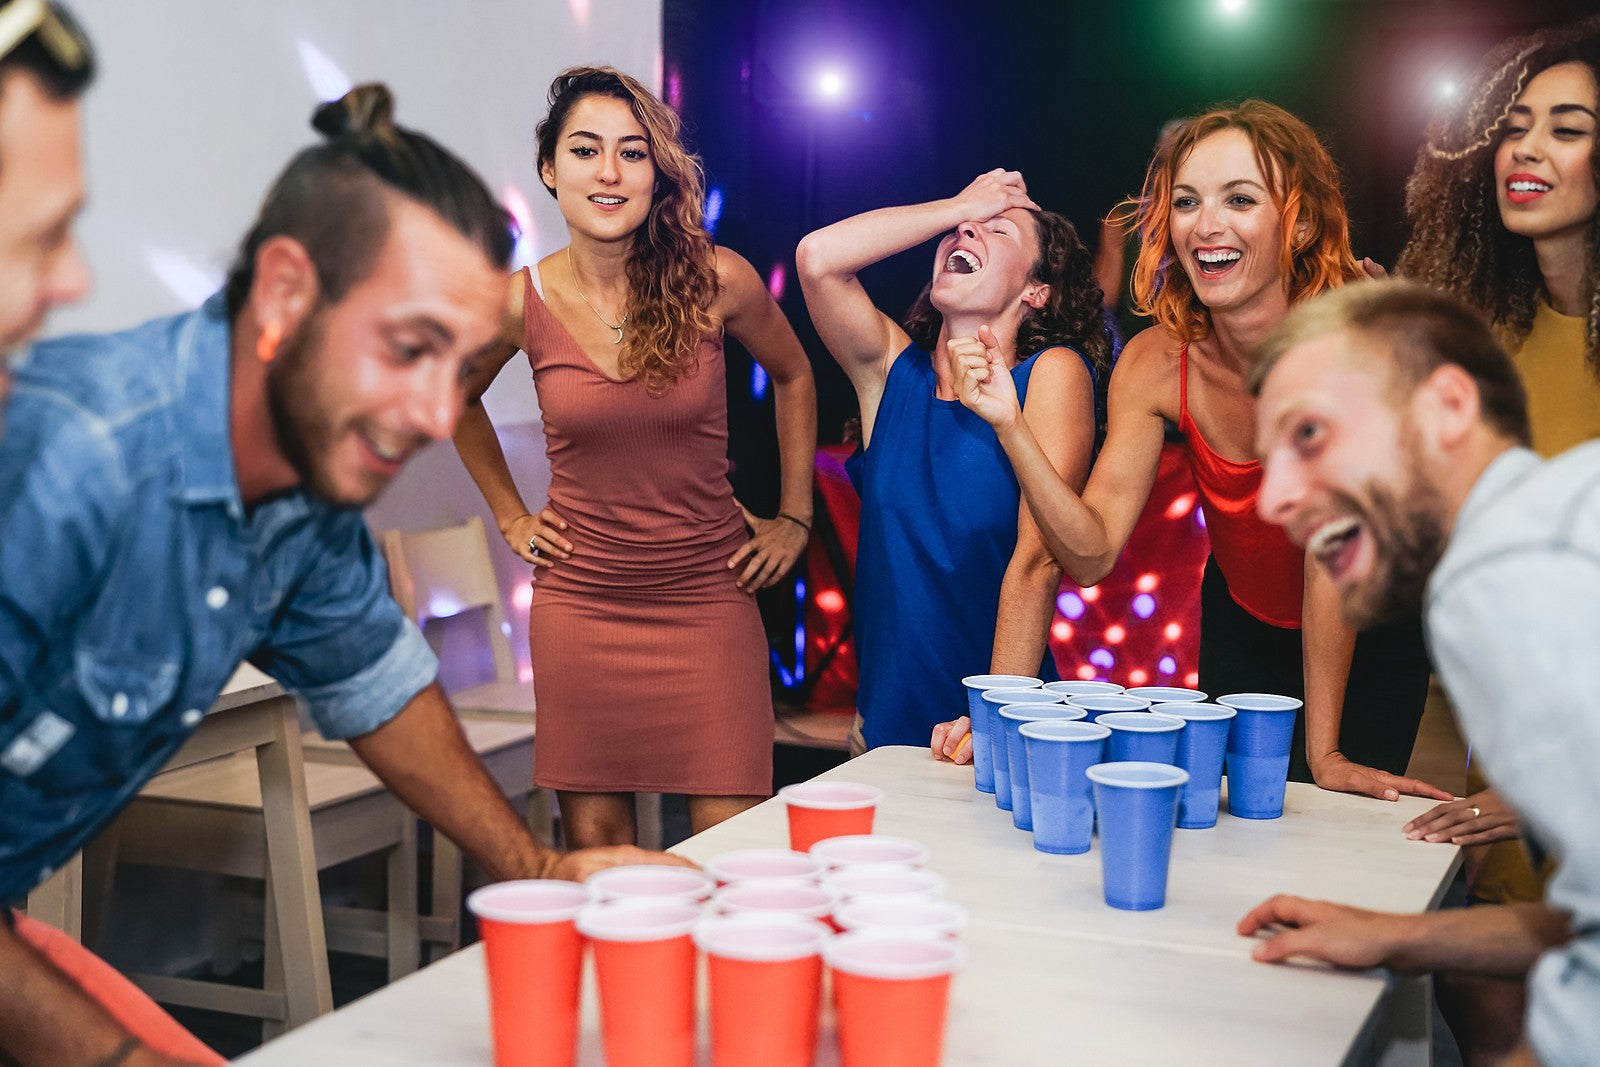 How to Play Beer Pong